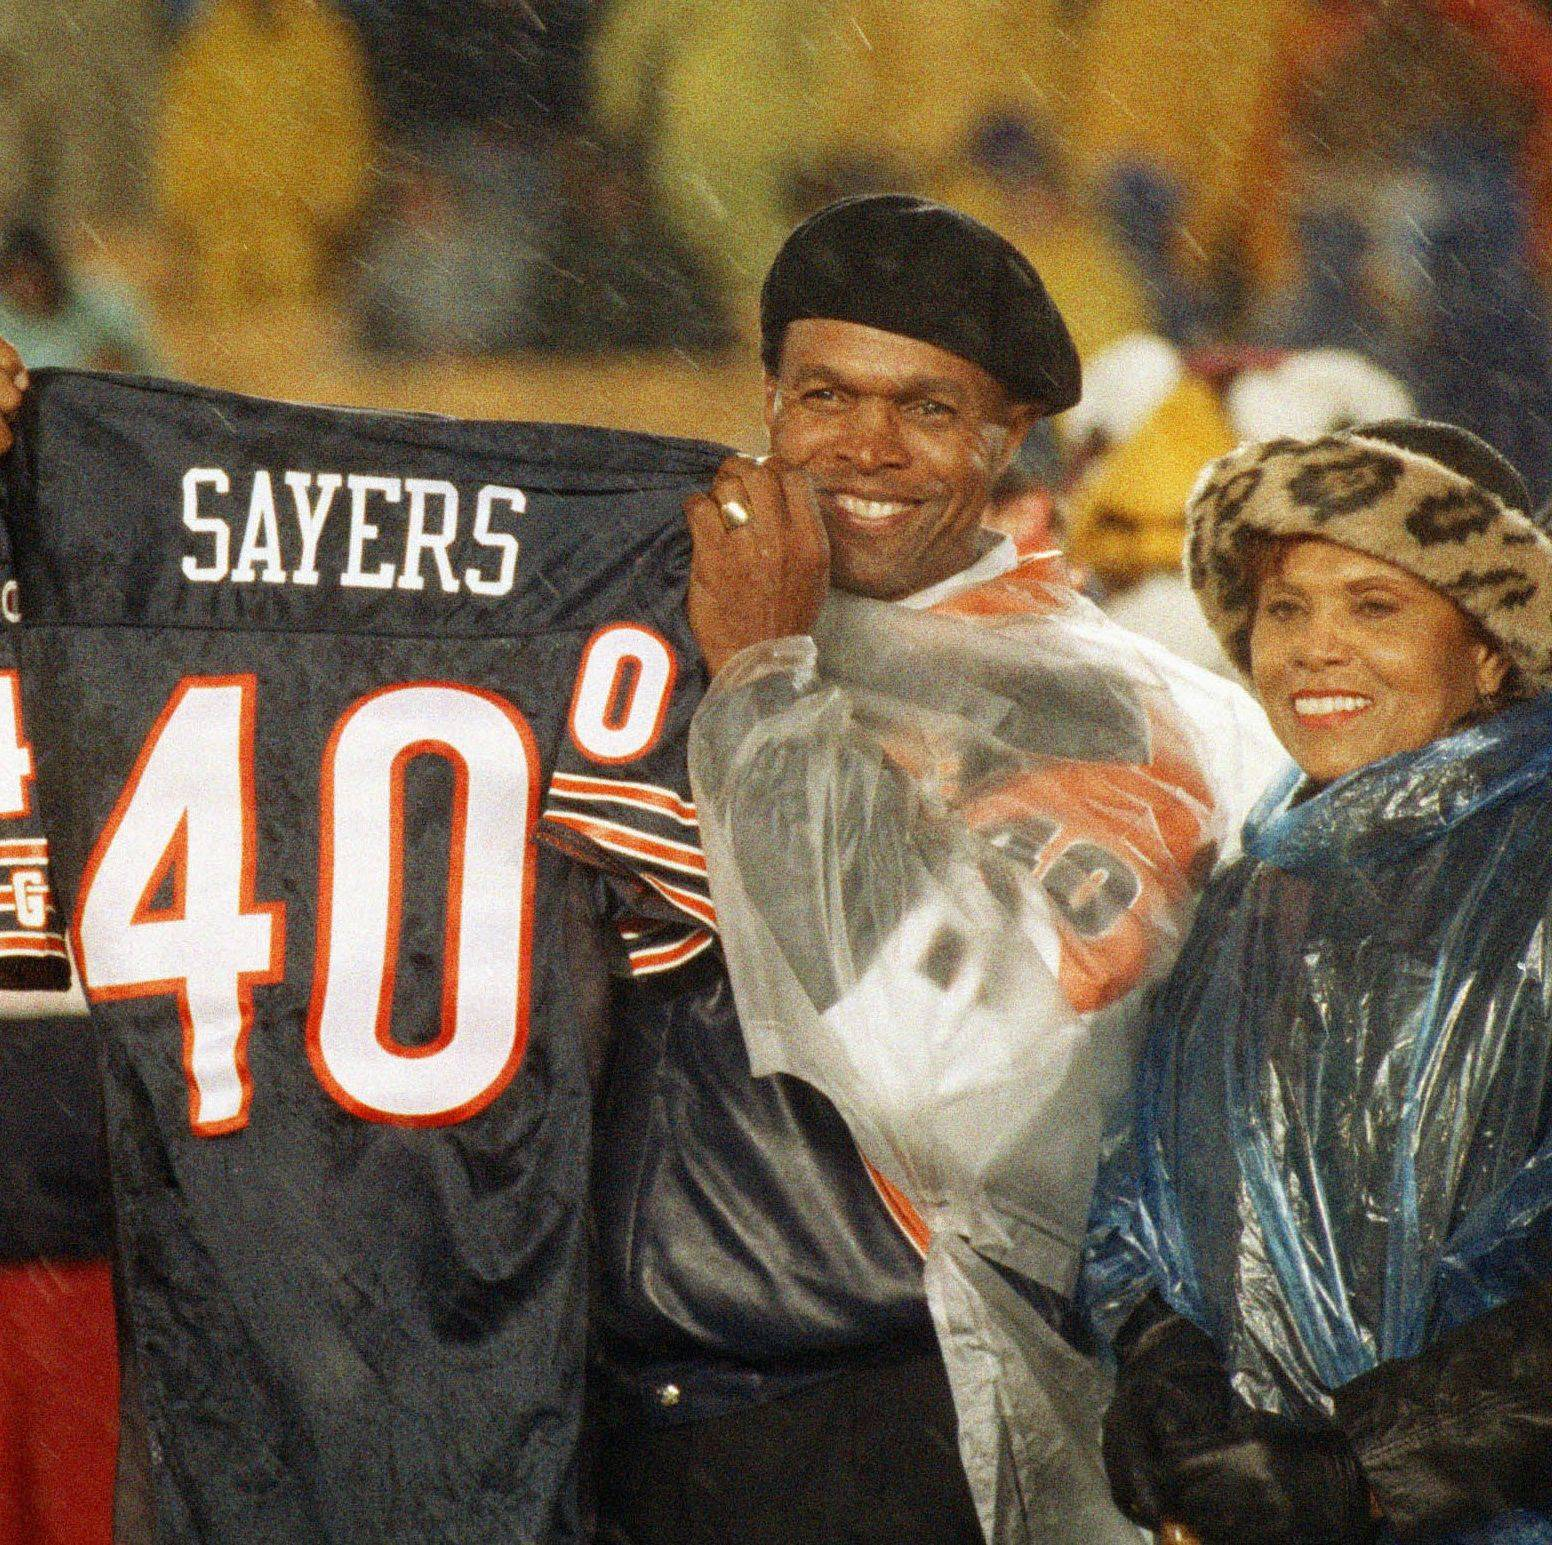 Gayle Sayers holds a jersey during halftime ceremoniese in the Bears' game with the Green Bay Packers at Soldier Field in Chicago Oct. 31, 1994. The Bears retired the uniform numbers of Sayers and linebacker Dick Butkus.